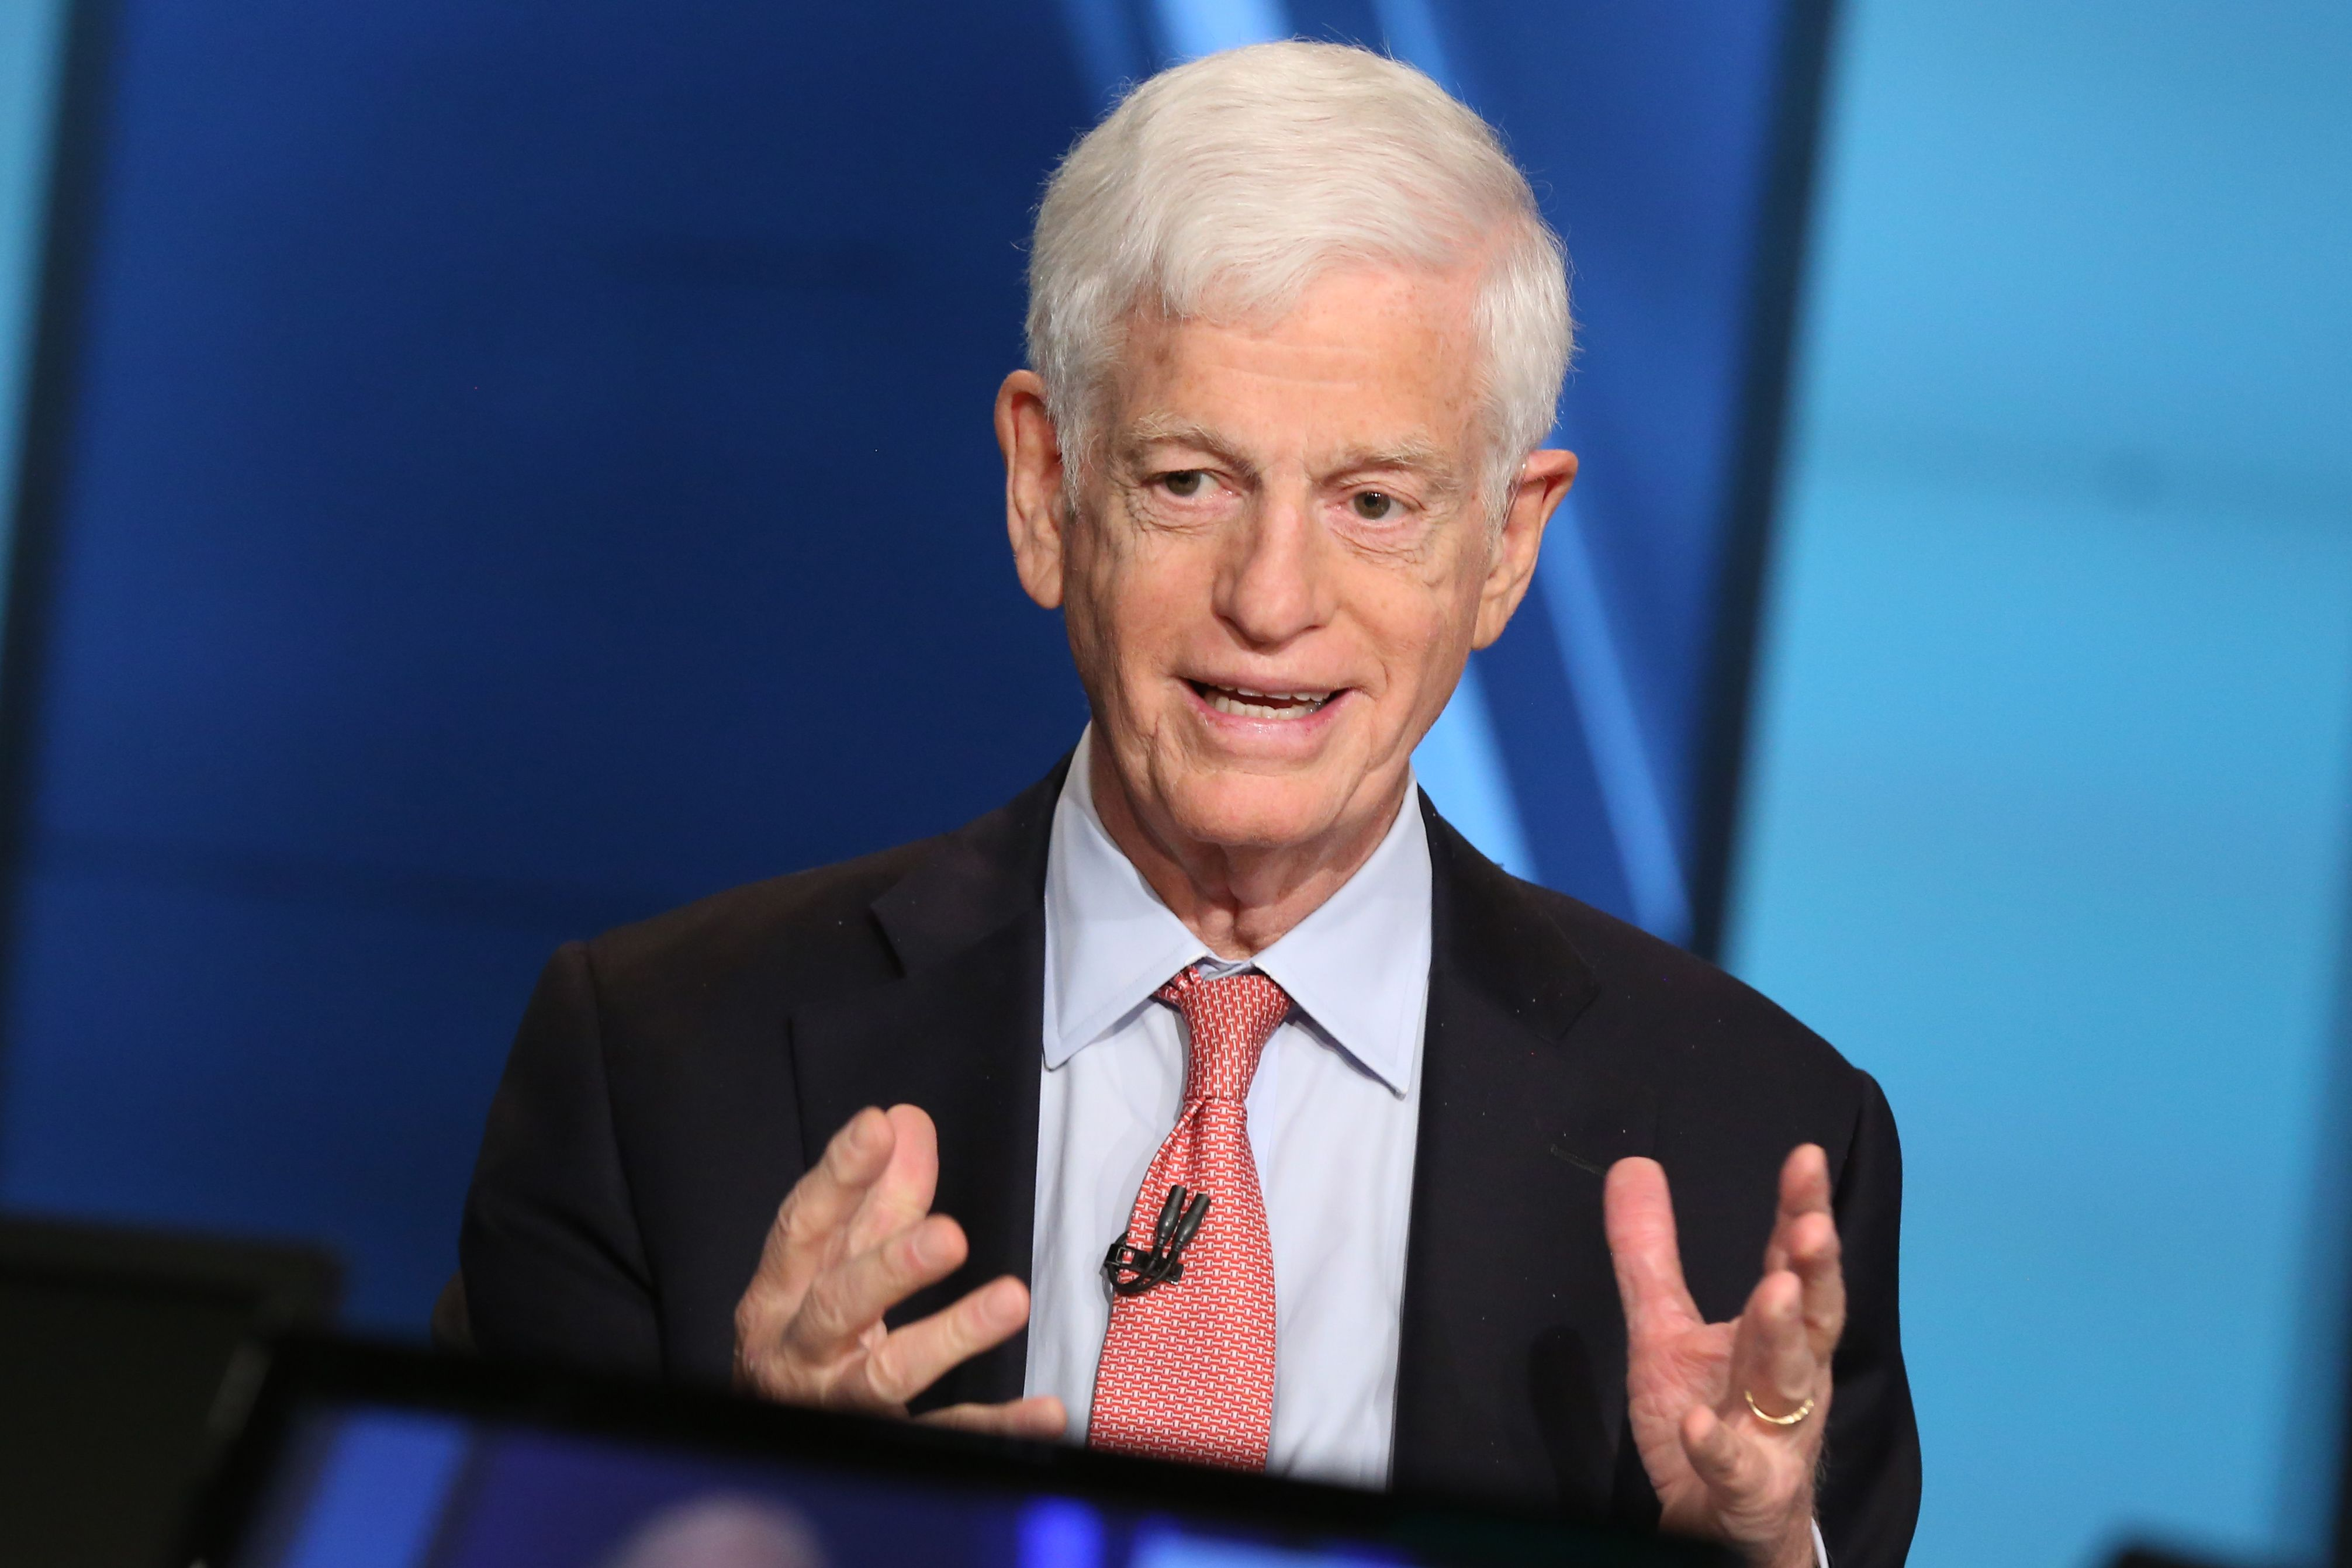 Small energy stock rips higher after investor Mario Gabelli says he is following it